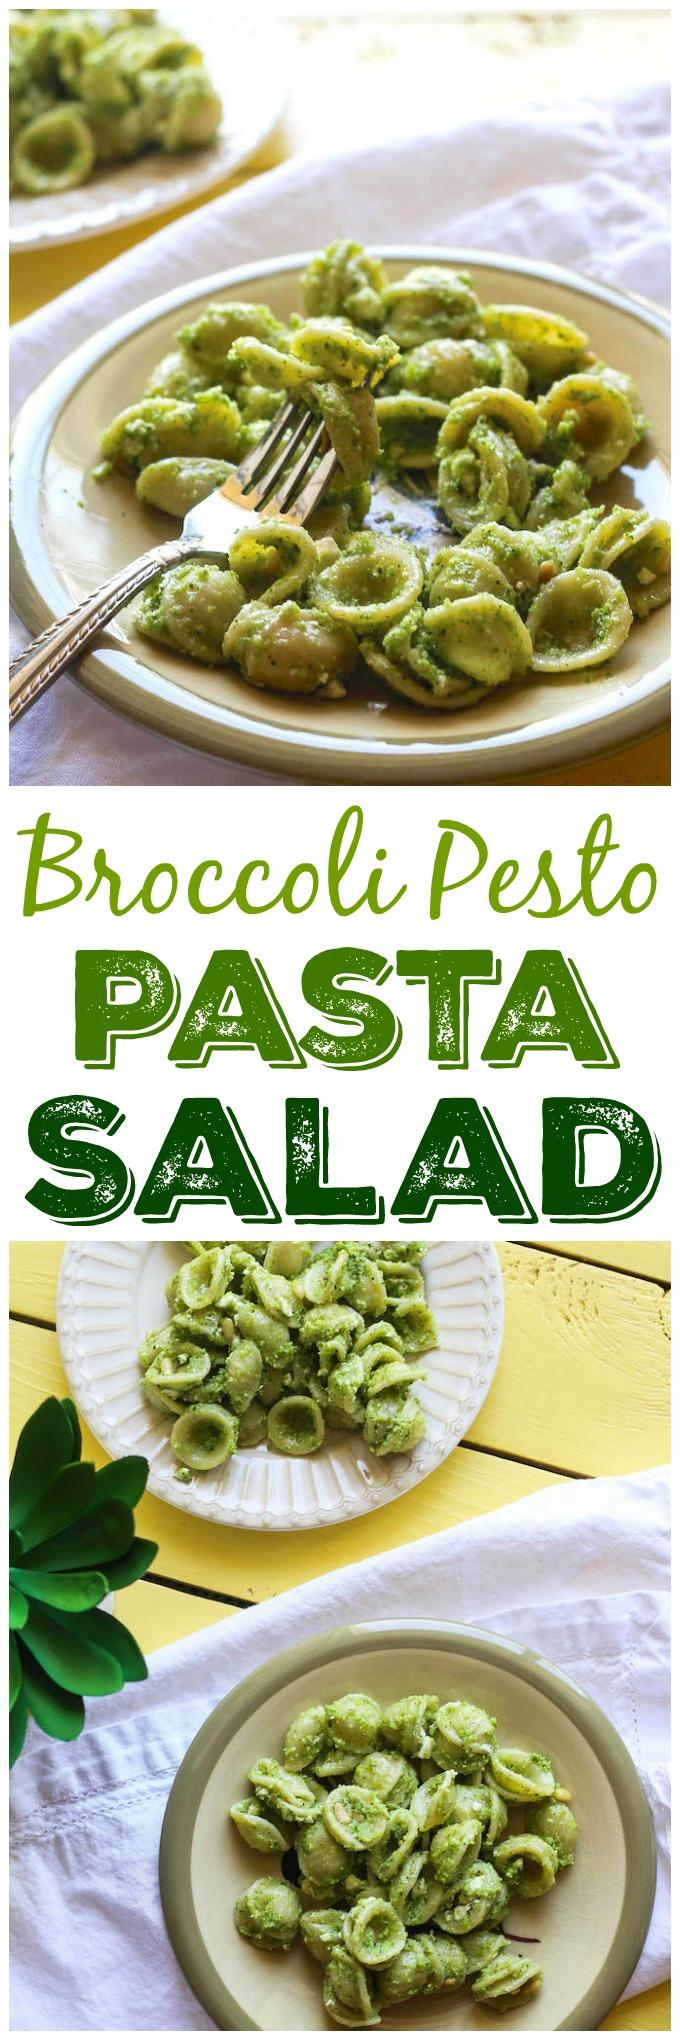 This Broccoli Pesto Pasta Salad makes the perfect summer side dish. An easy way to add some extra vegetables to the dinner table.